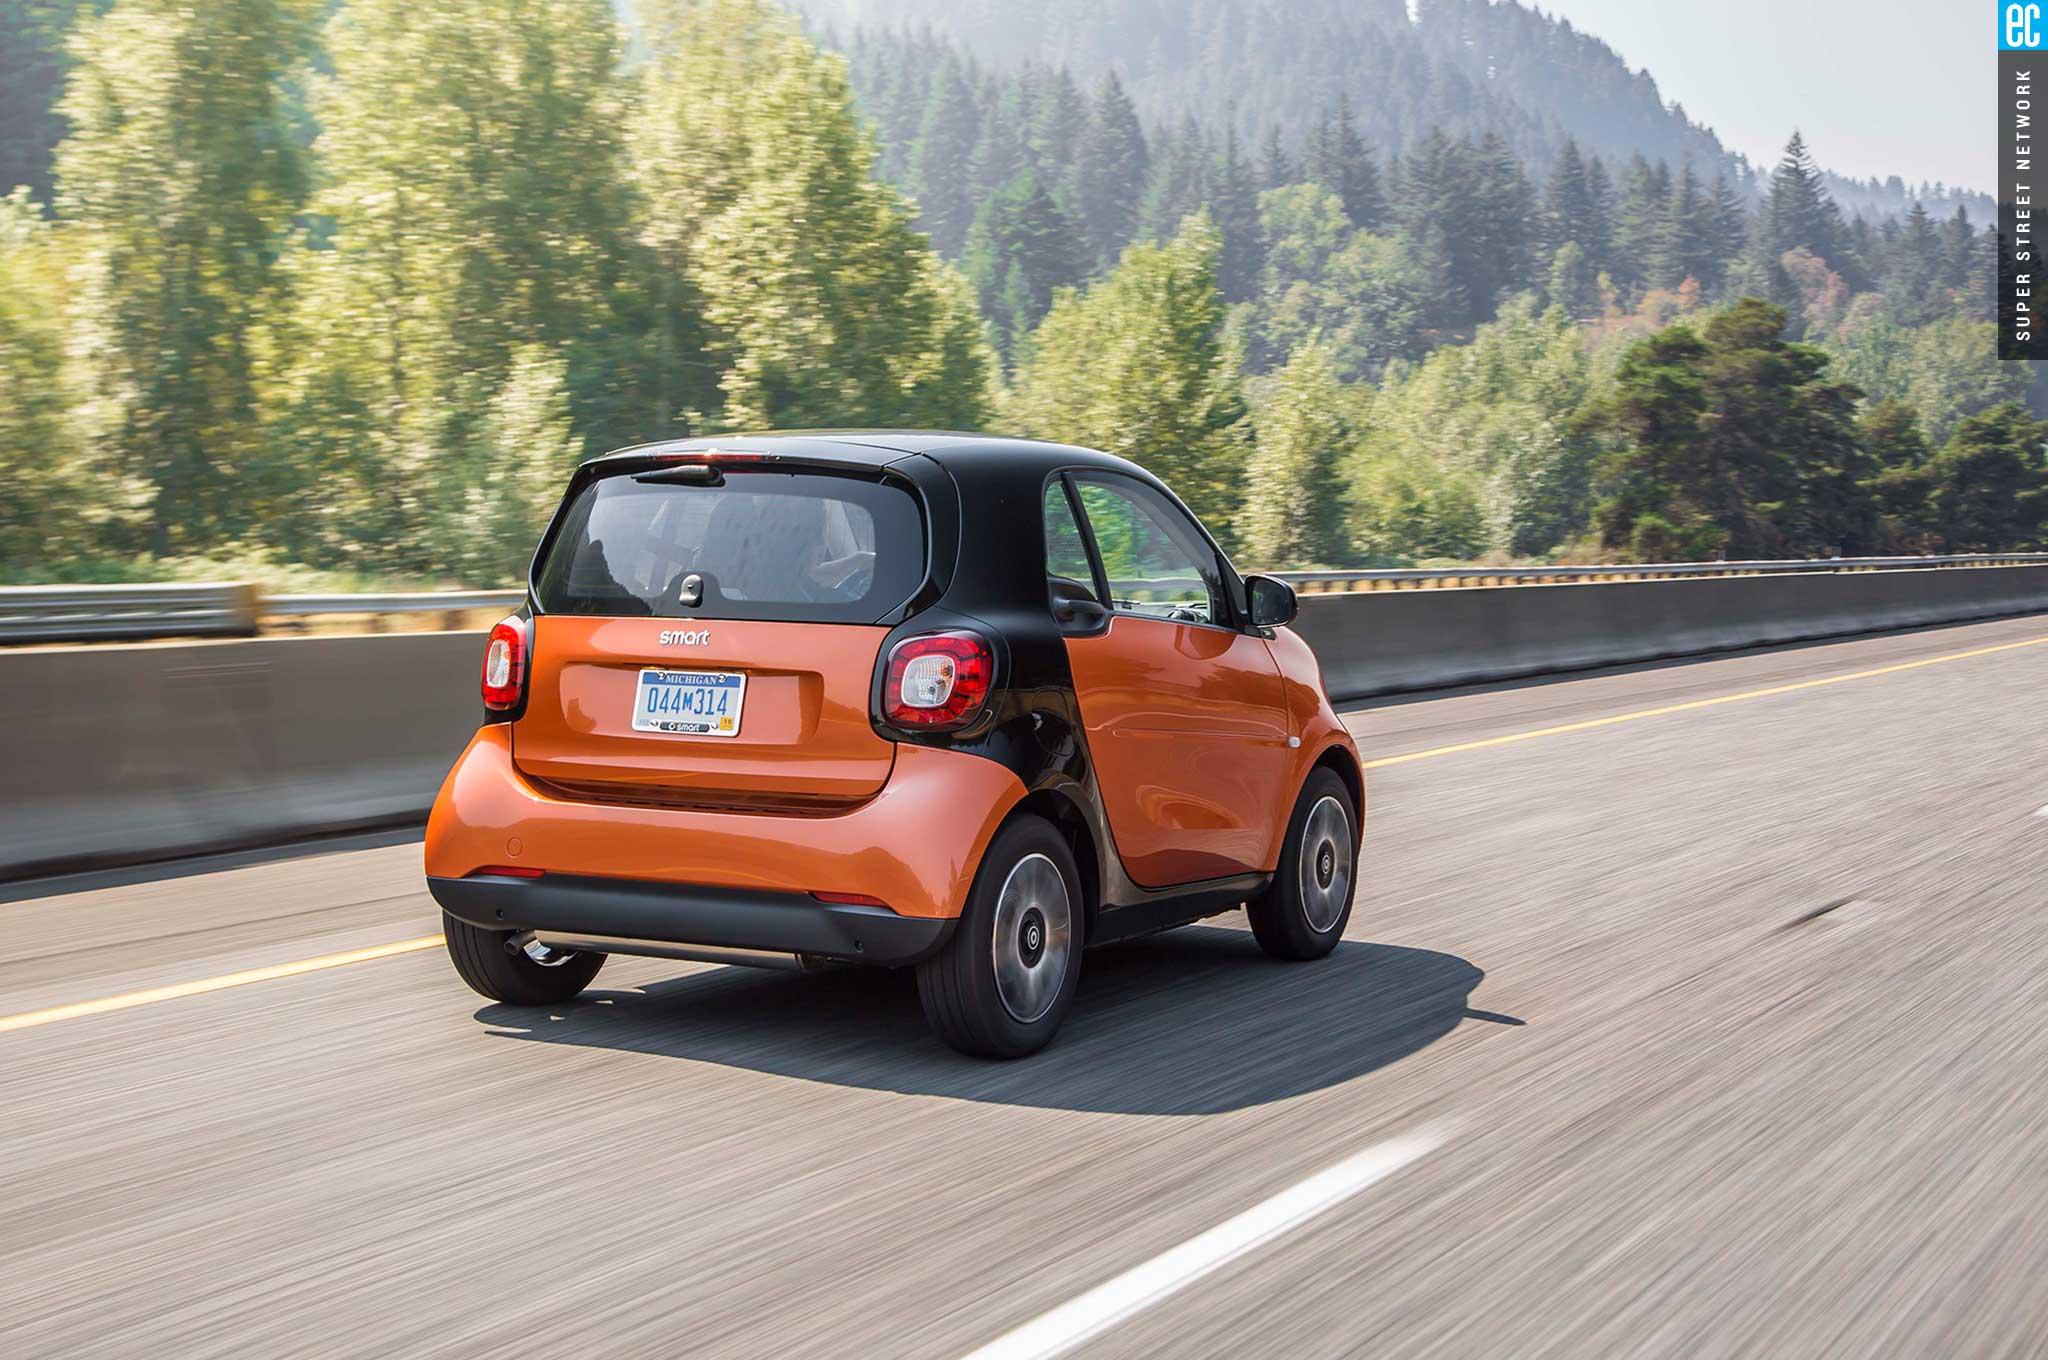 2016 Smart Fortwo Driver Side Rear View